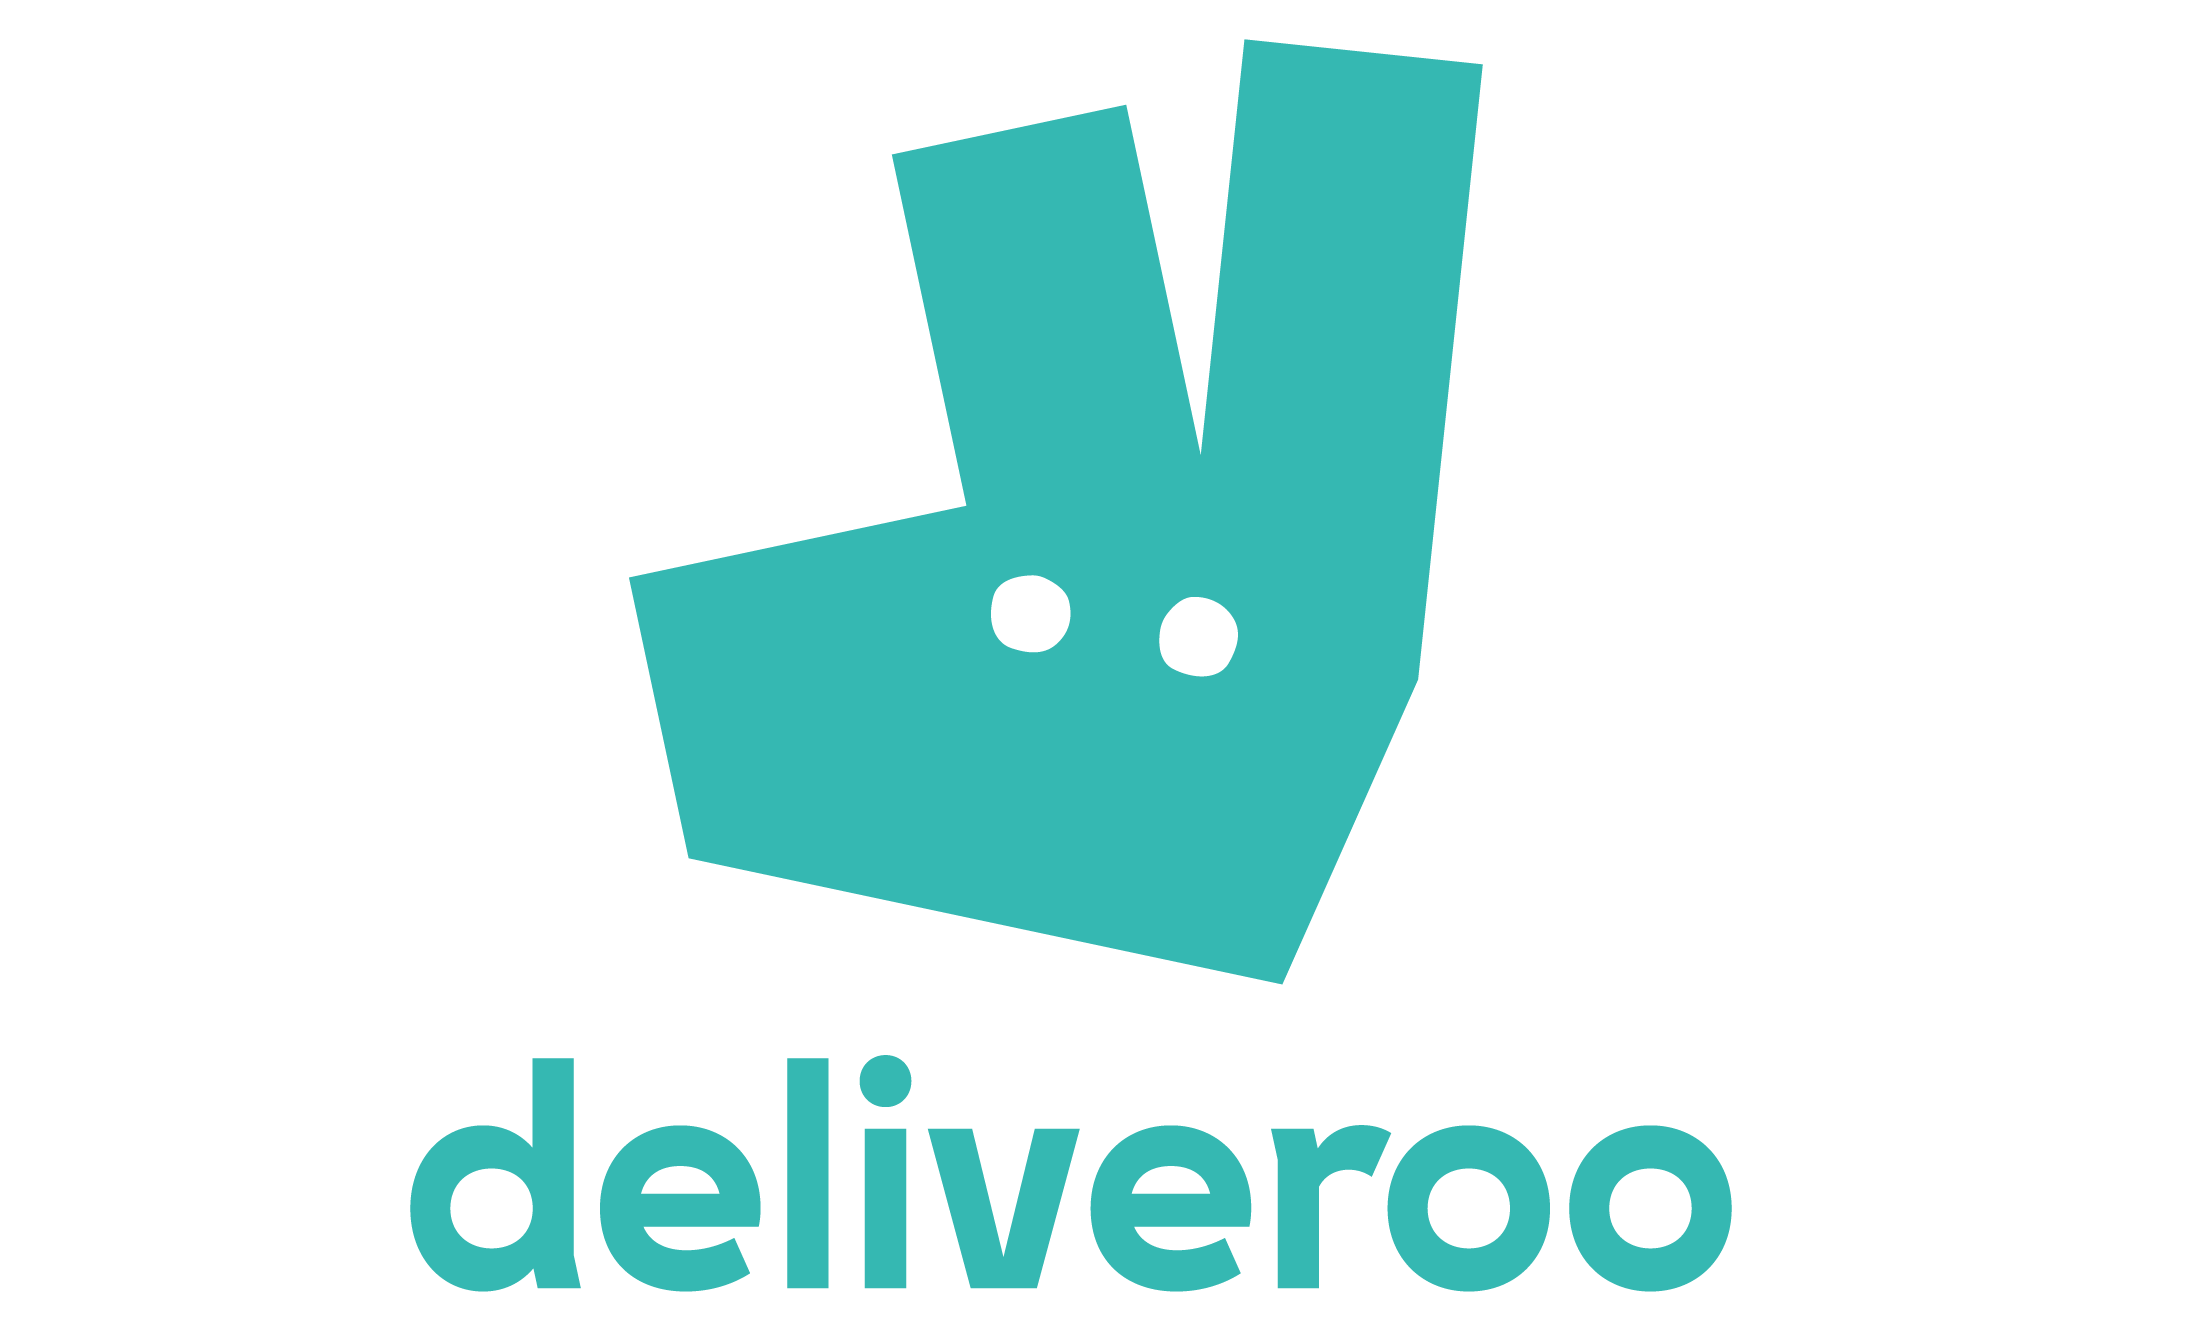 Deliveroo reveals new identity as part of rebrand ...